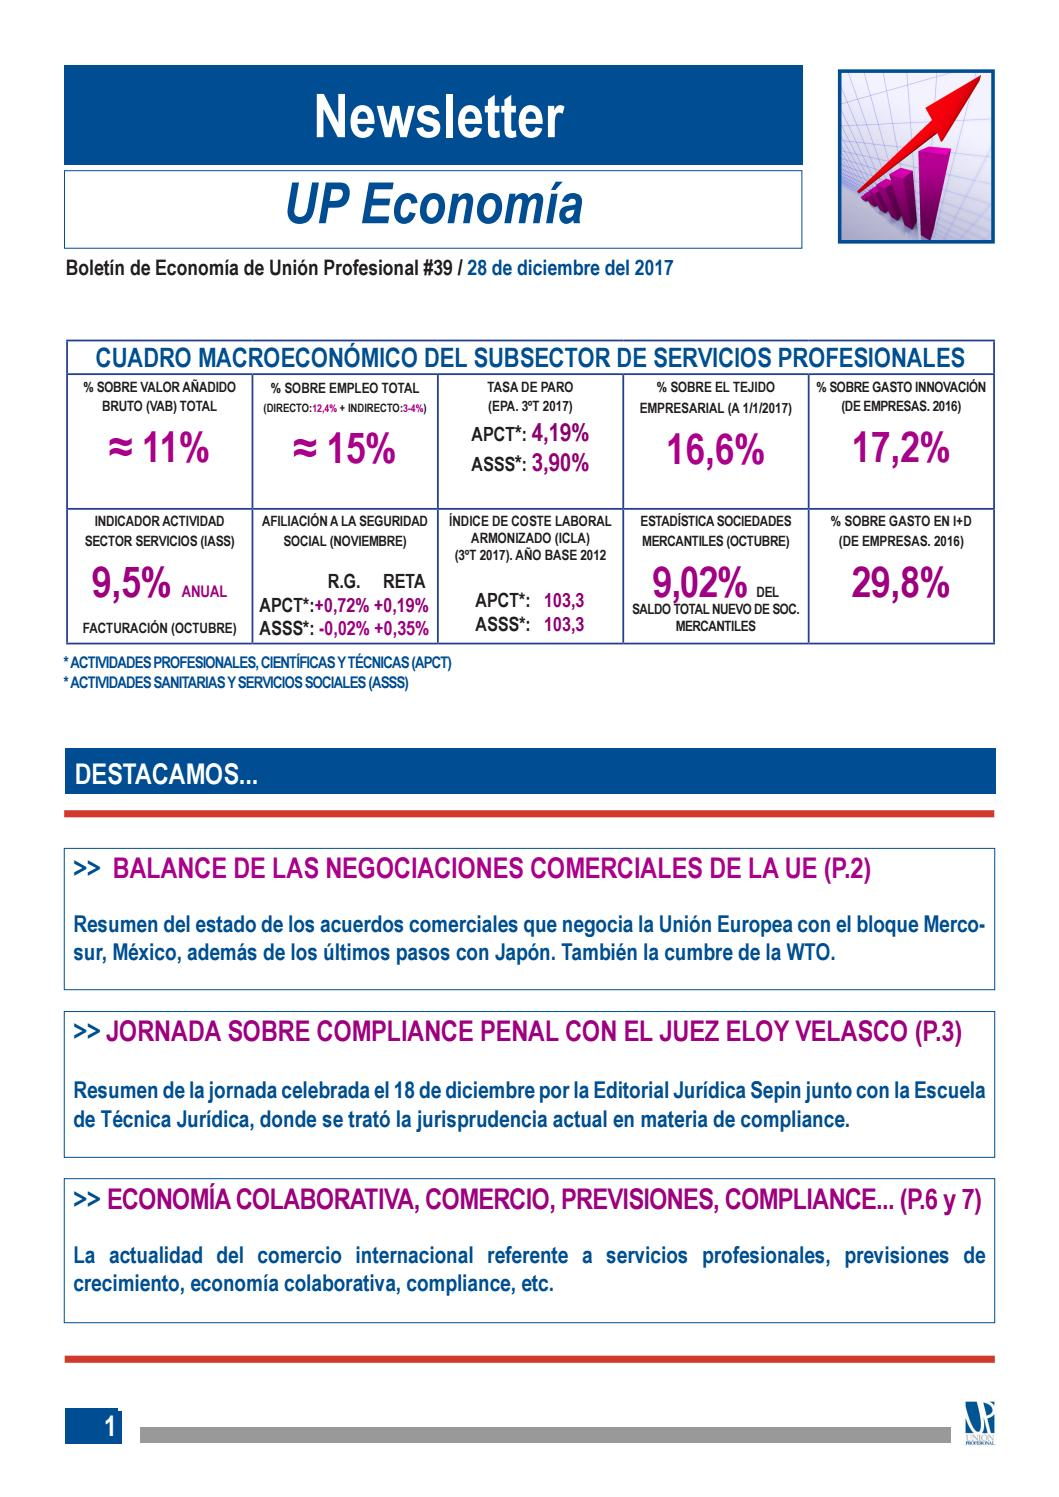 Newsletter Economia 2017 by Unión Profesional - issuu